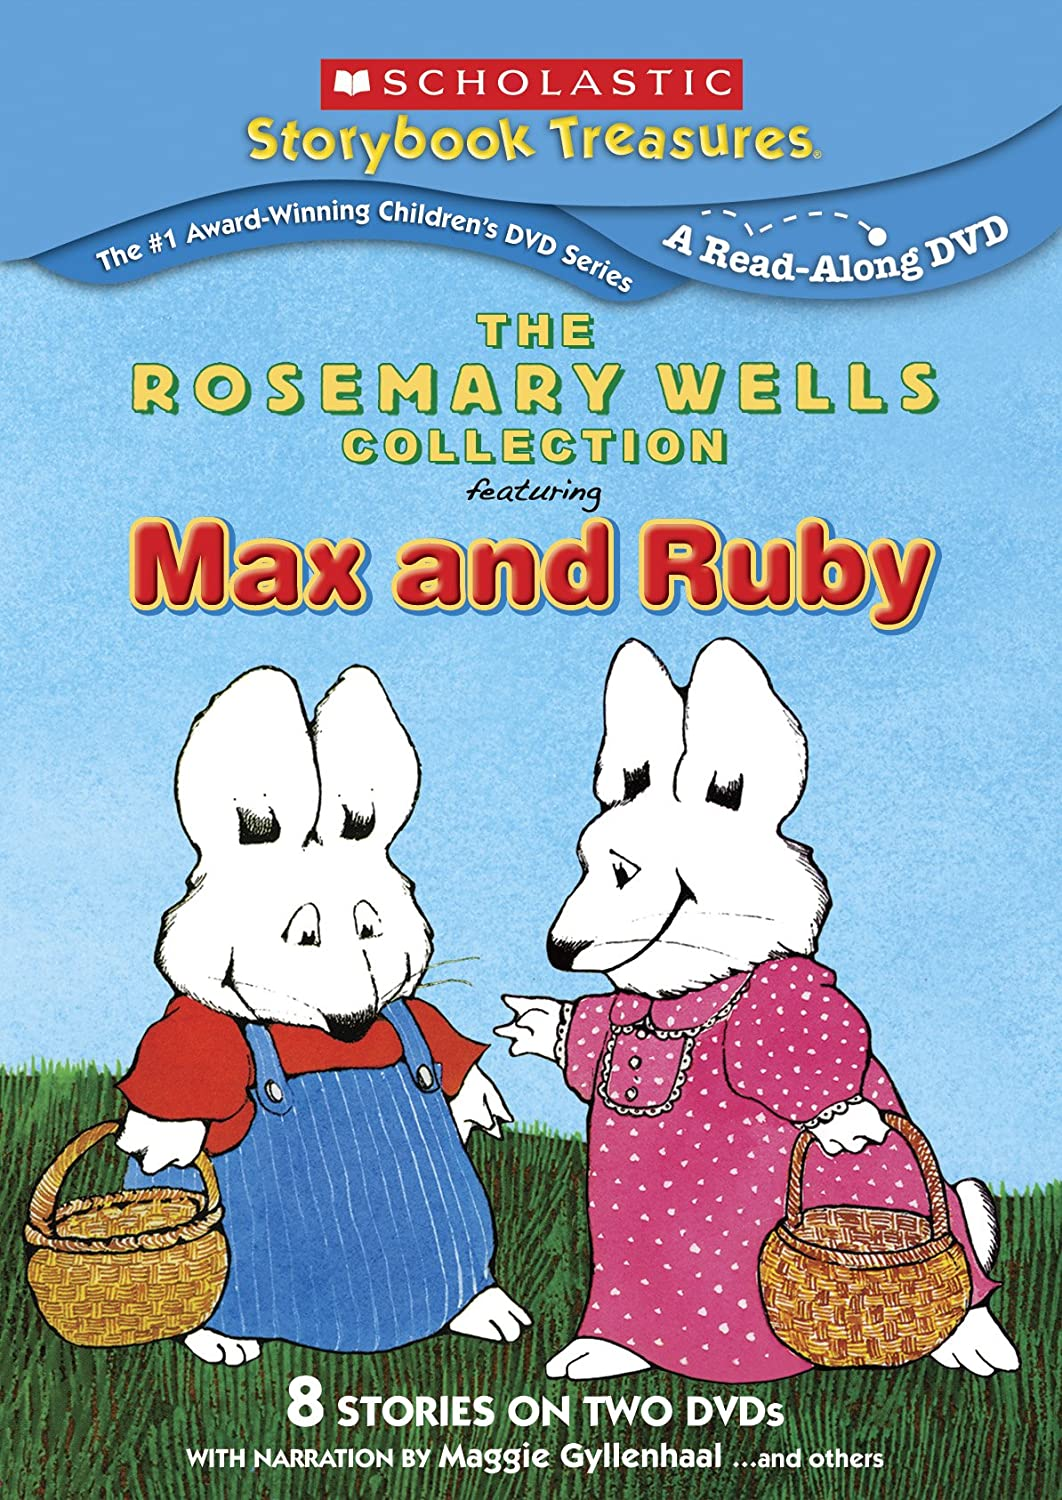 Amazon Com The Rosemary Wells Collection Scholastic Storybook Treasures Animation Animation Movies Tv